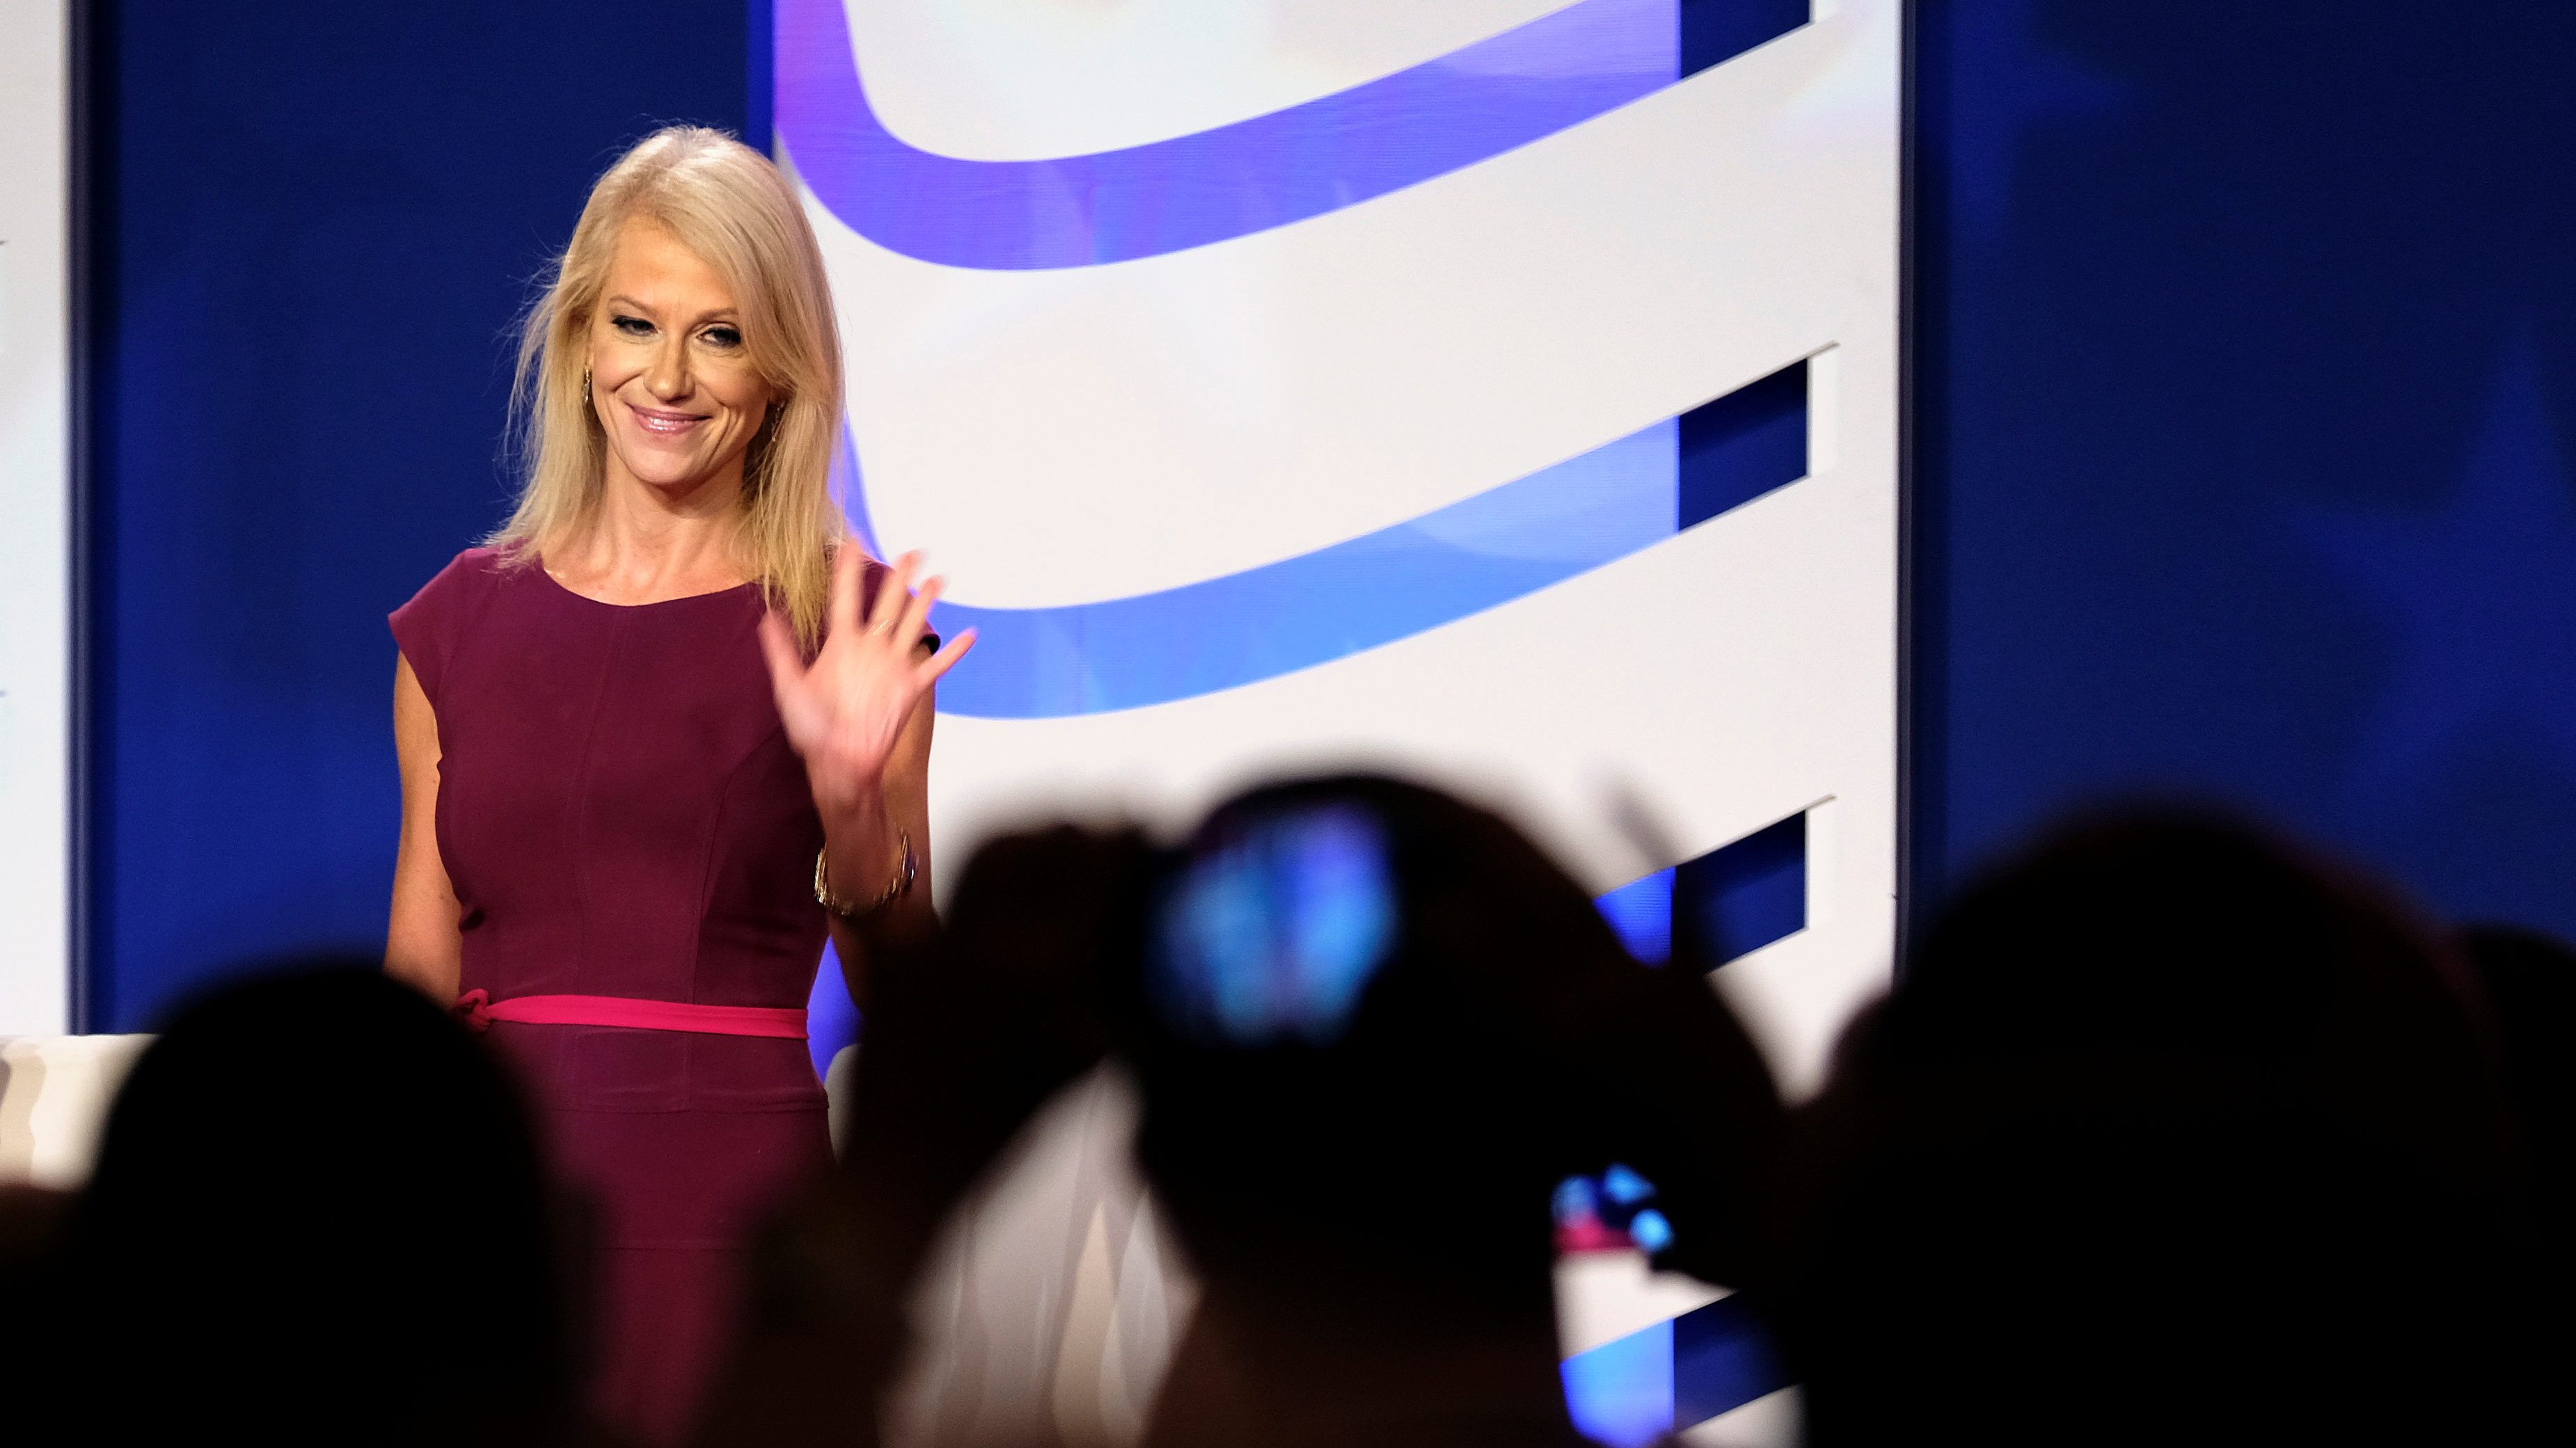 White House counselor Kellyanne Conway speaks at the Values Voter Summit of the Family Research Council in Washington, DC, U.S. October 13, 2017.